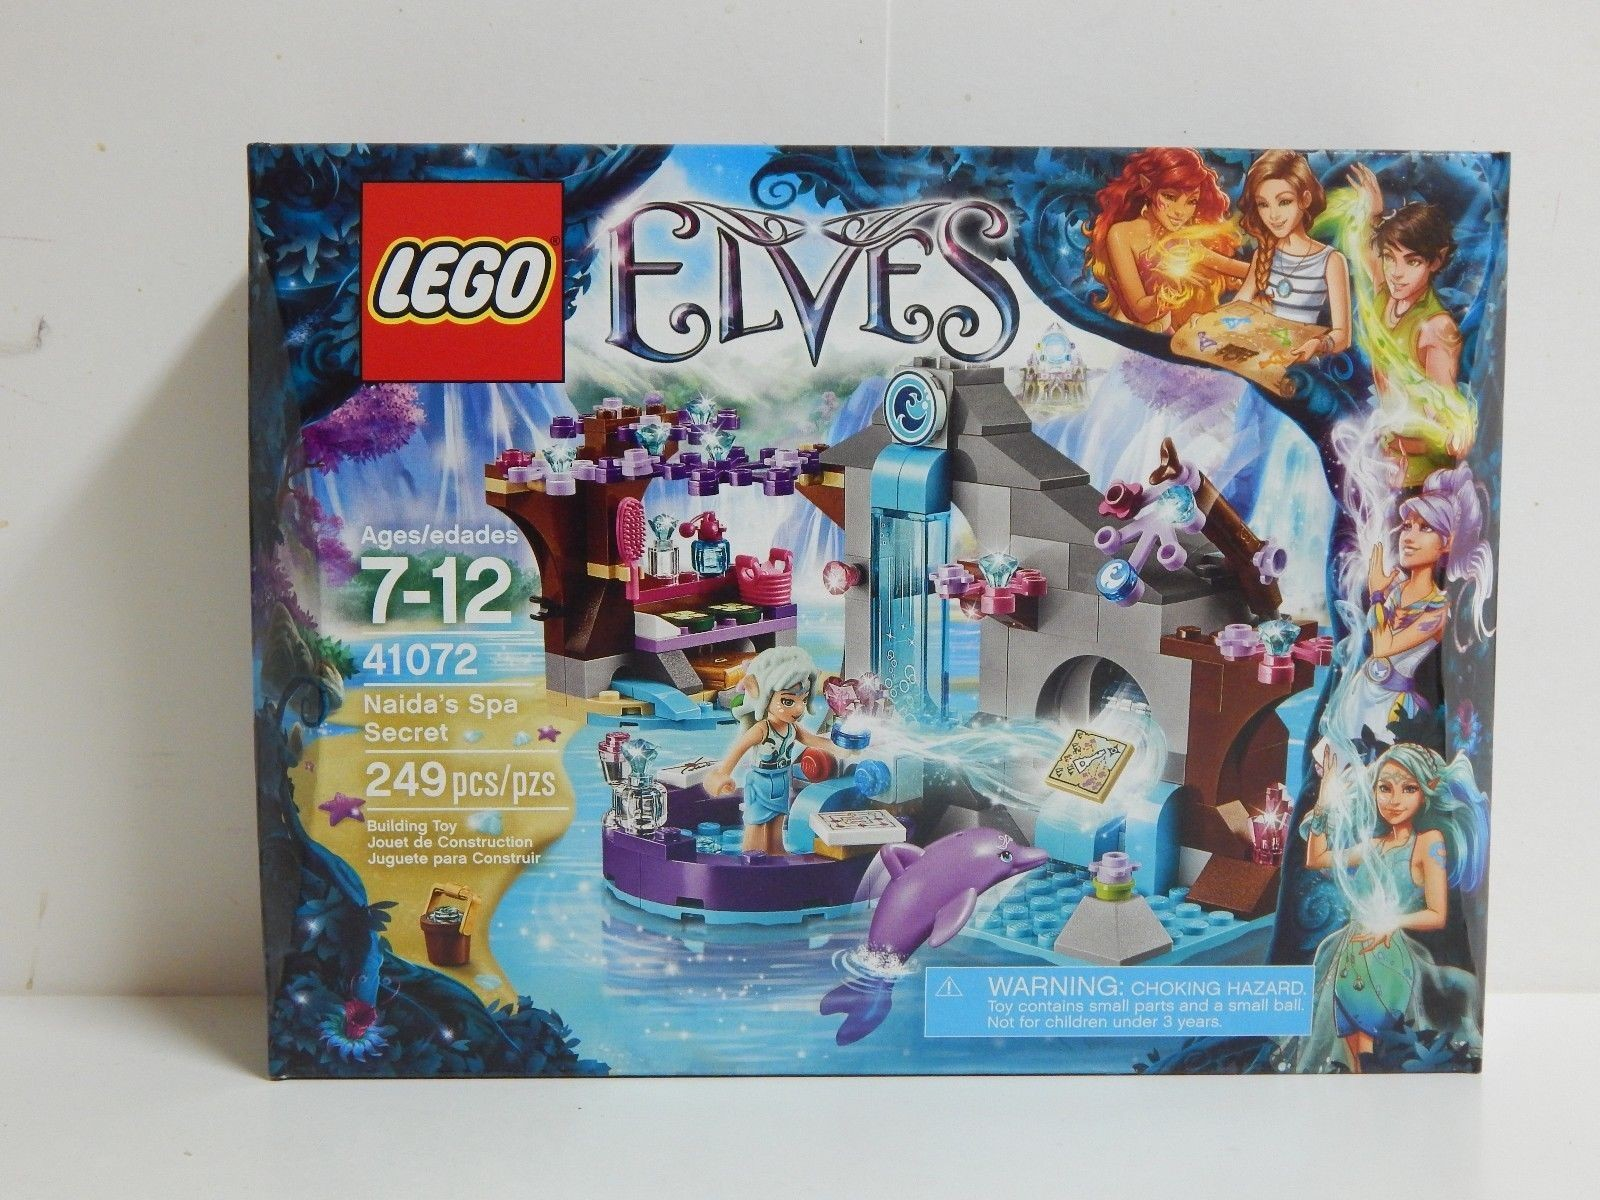 Lego March Calendar Actual Lego Elves Naida S Spa Secret Factory Sealed Retired sold Out Of Lego March Calendar Actual Free Lego Powerpoint Template Genuine Spider Labelled Diagram Luxury